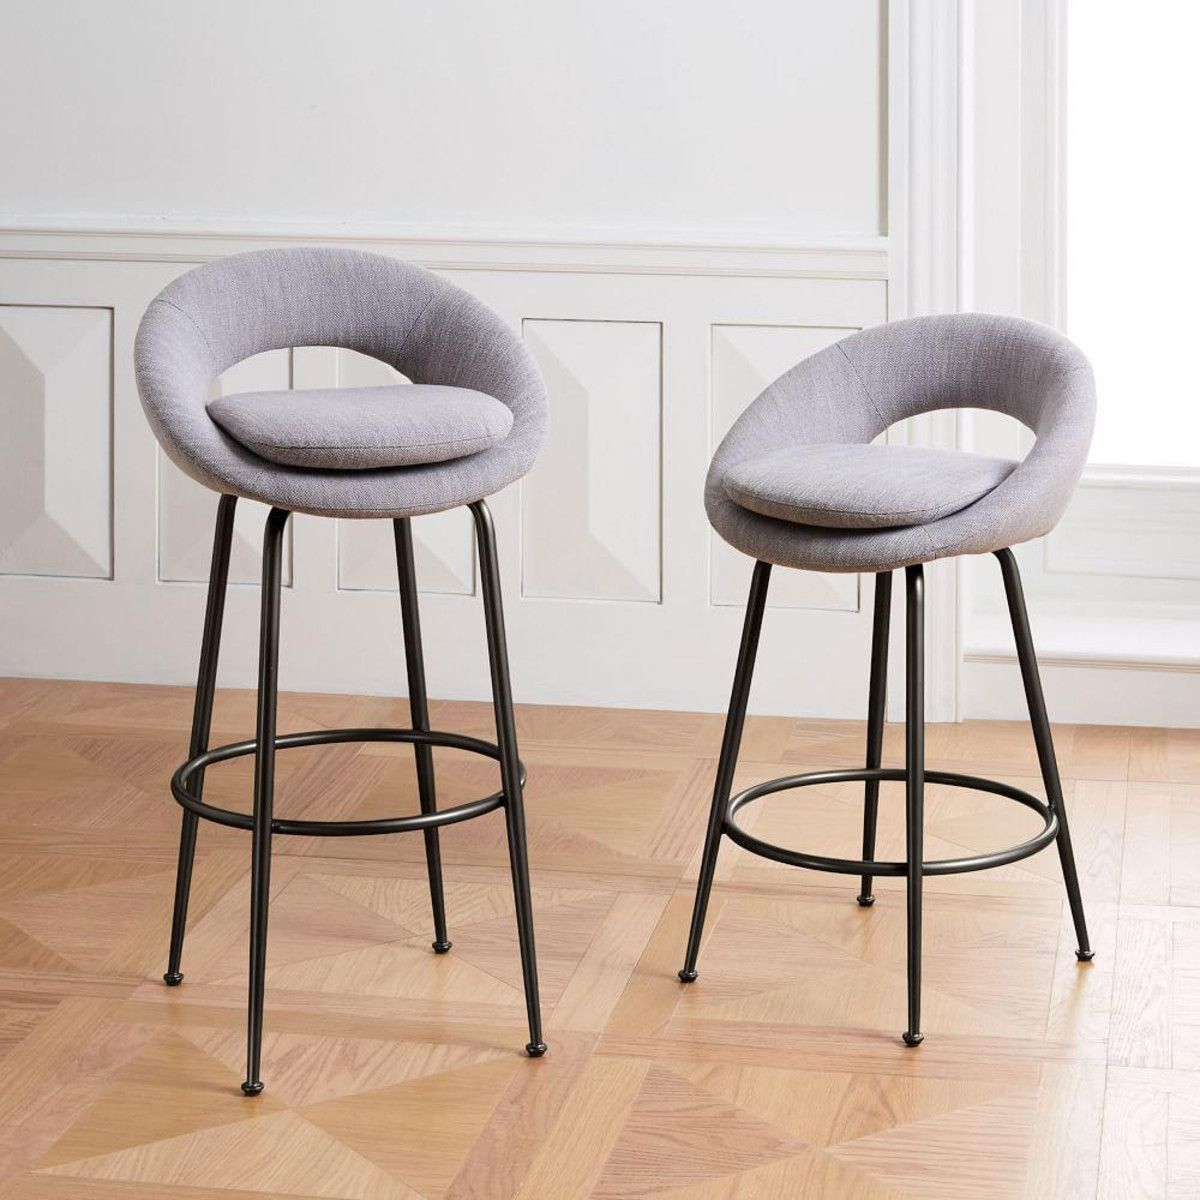 Amazing Orb Upholstered Bar Counter Stools Kitchen In 2019 Gmtry Best Dining Table And Chair Ideas Images Gmtryco